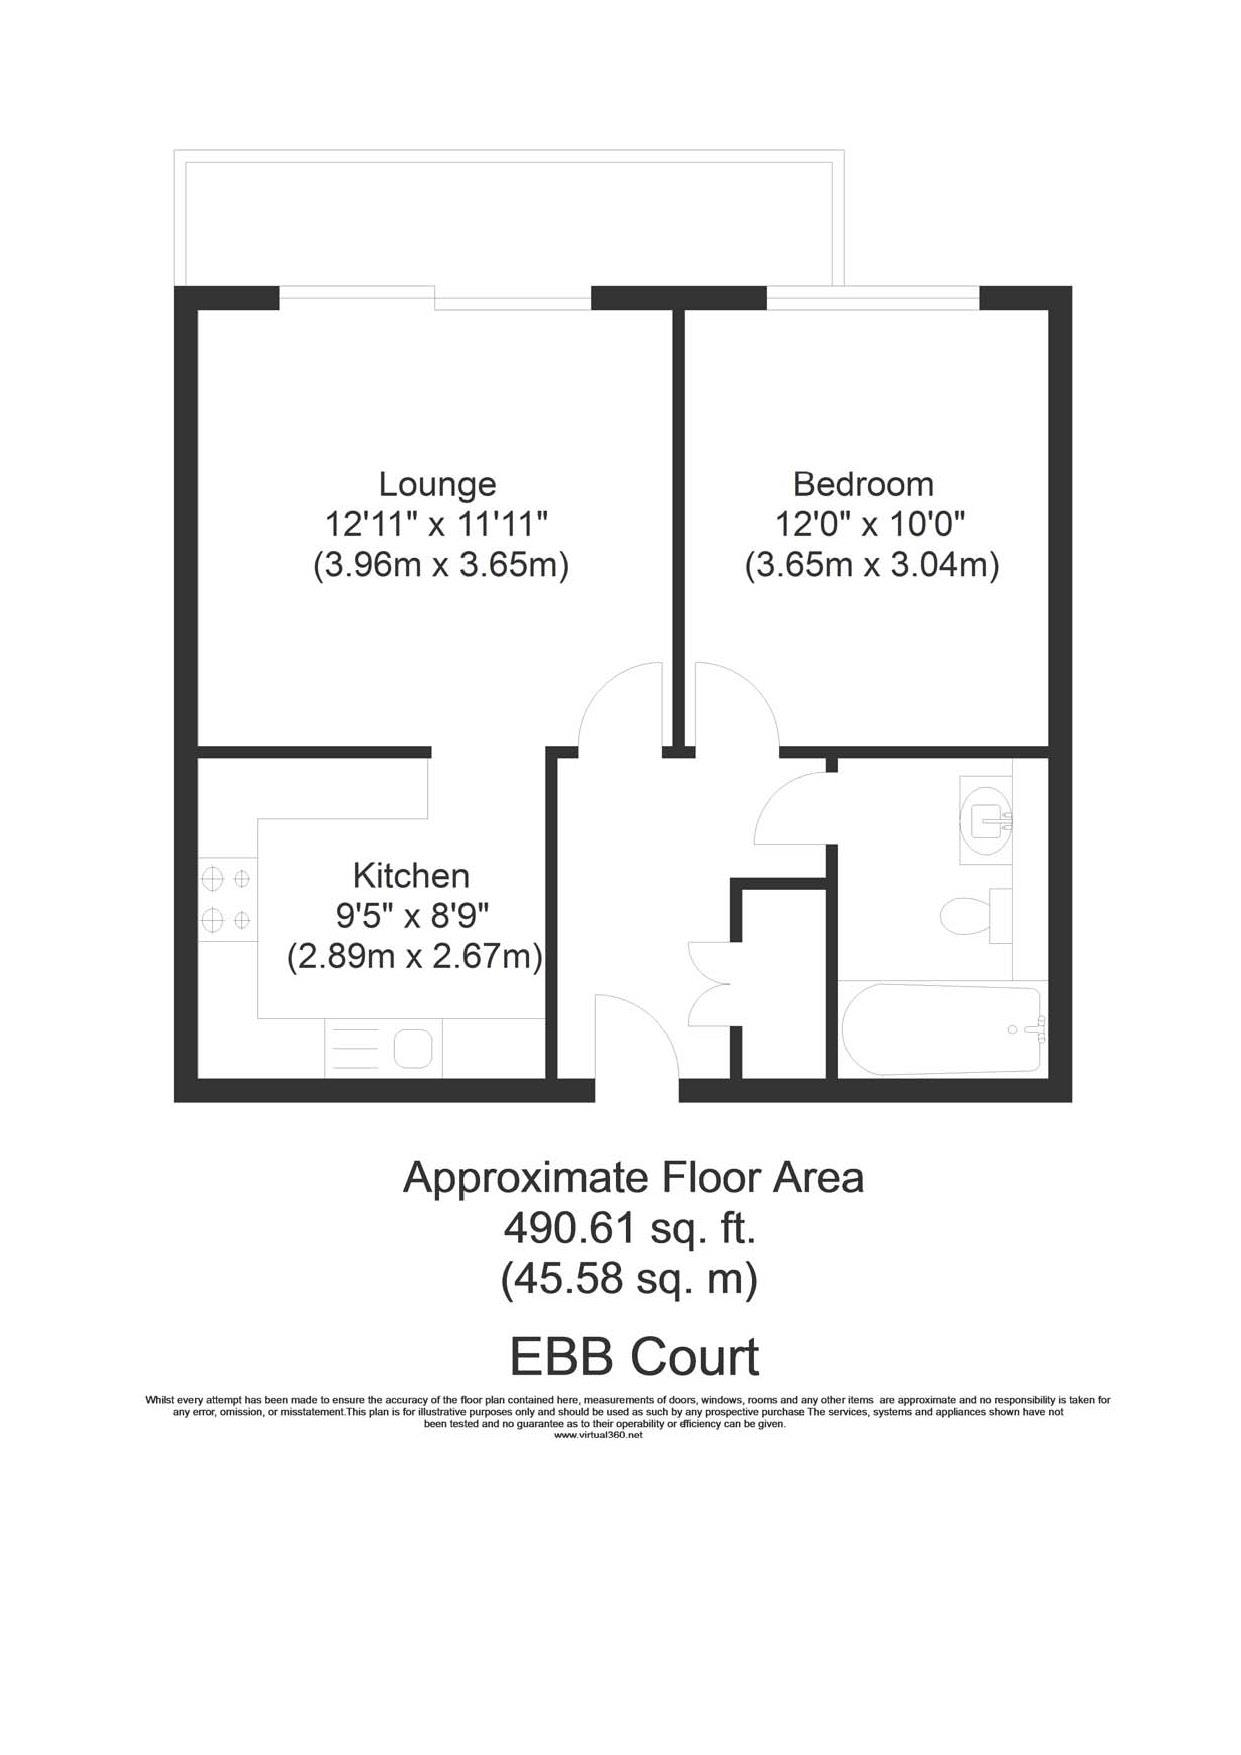 Floorplan for the property 1 bed Apartment for sale in Albert Basin Way, E16 - 1